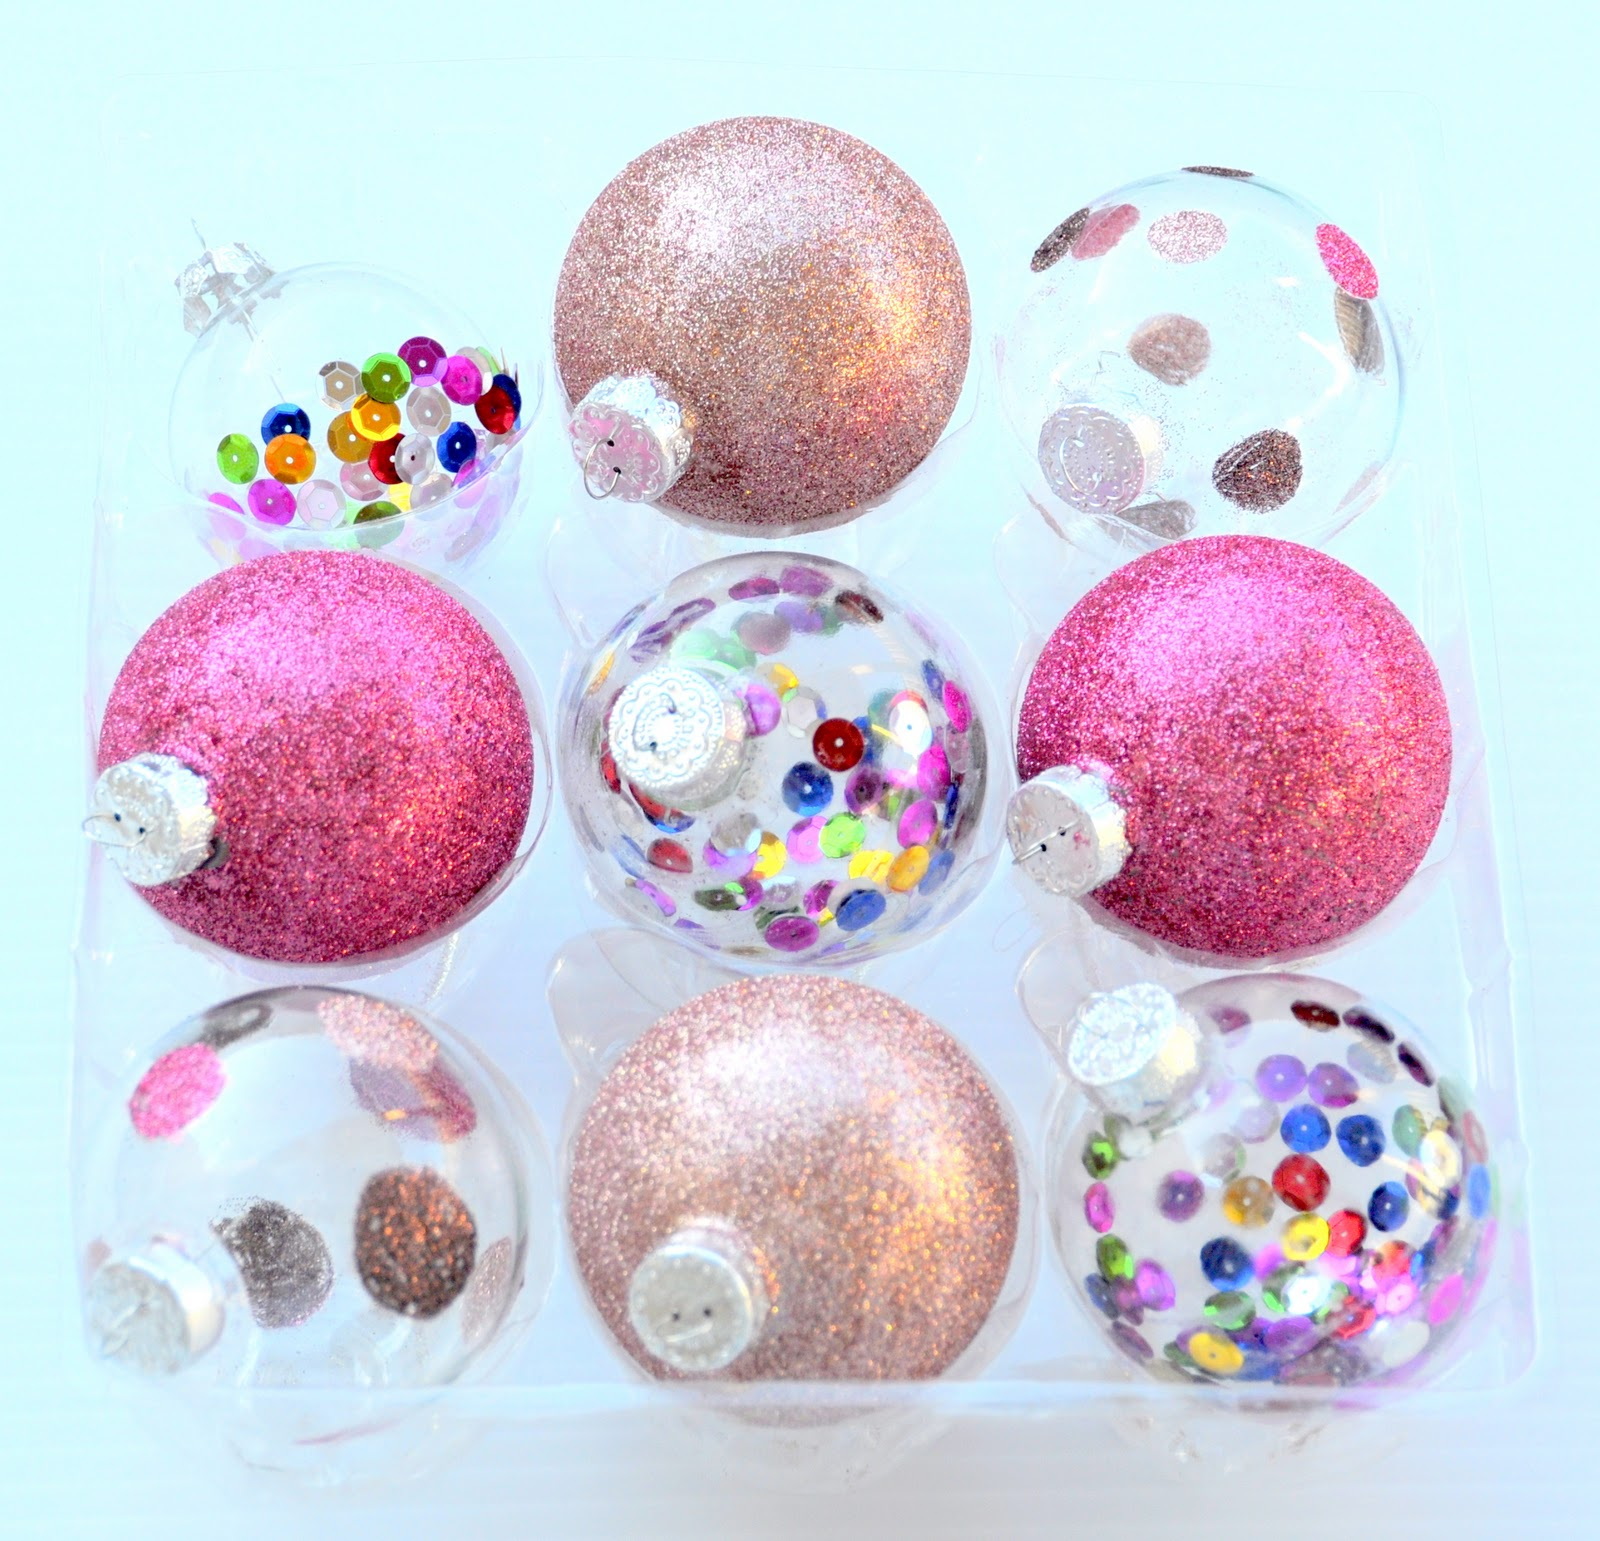 Glue for glass ornaments - Last Year I Made Gold Glitter Polka Dot Ornaments But This Year I Wanted More Color So I Used Glass Ornaments To Make A Range Of Pink Glittered